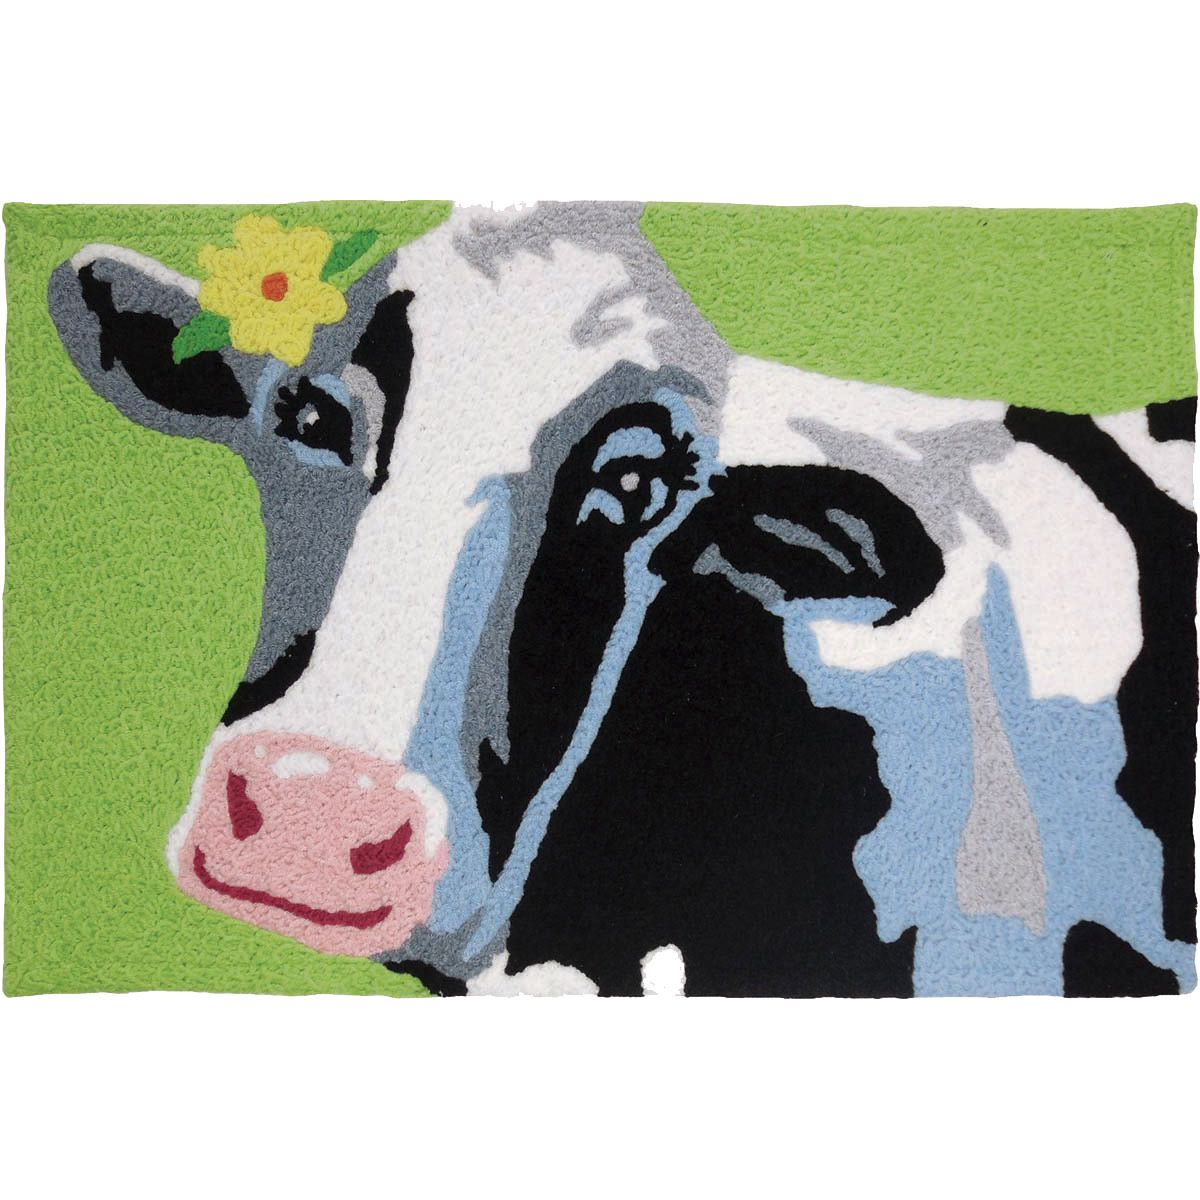 Curious Cow Accent Rug